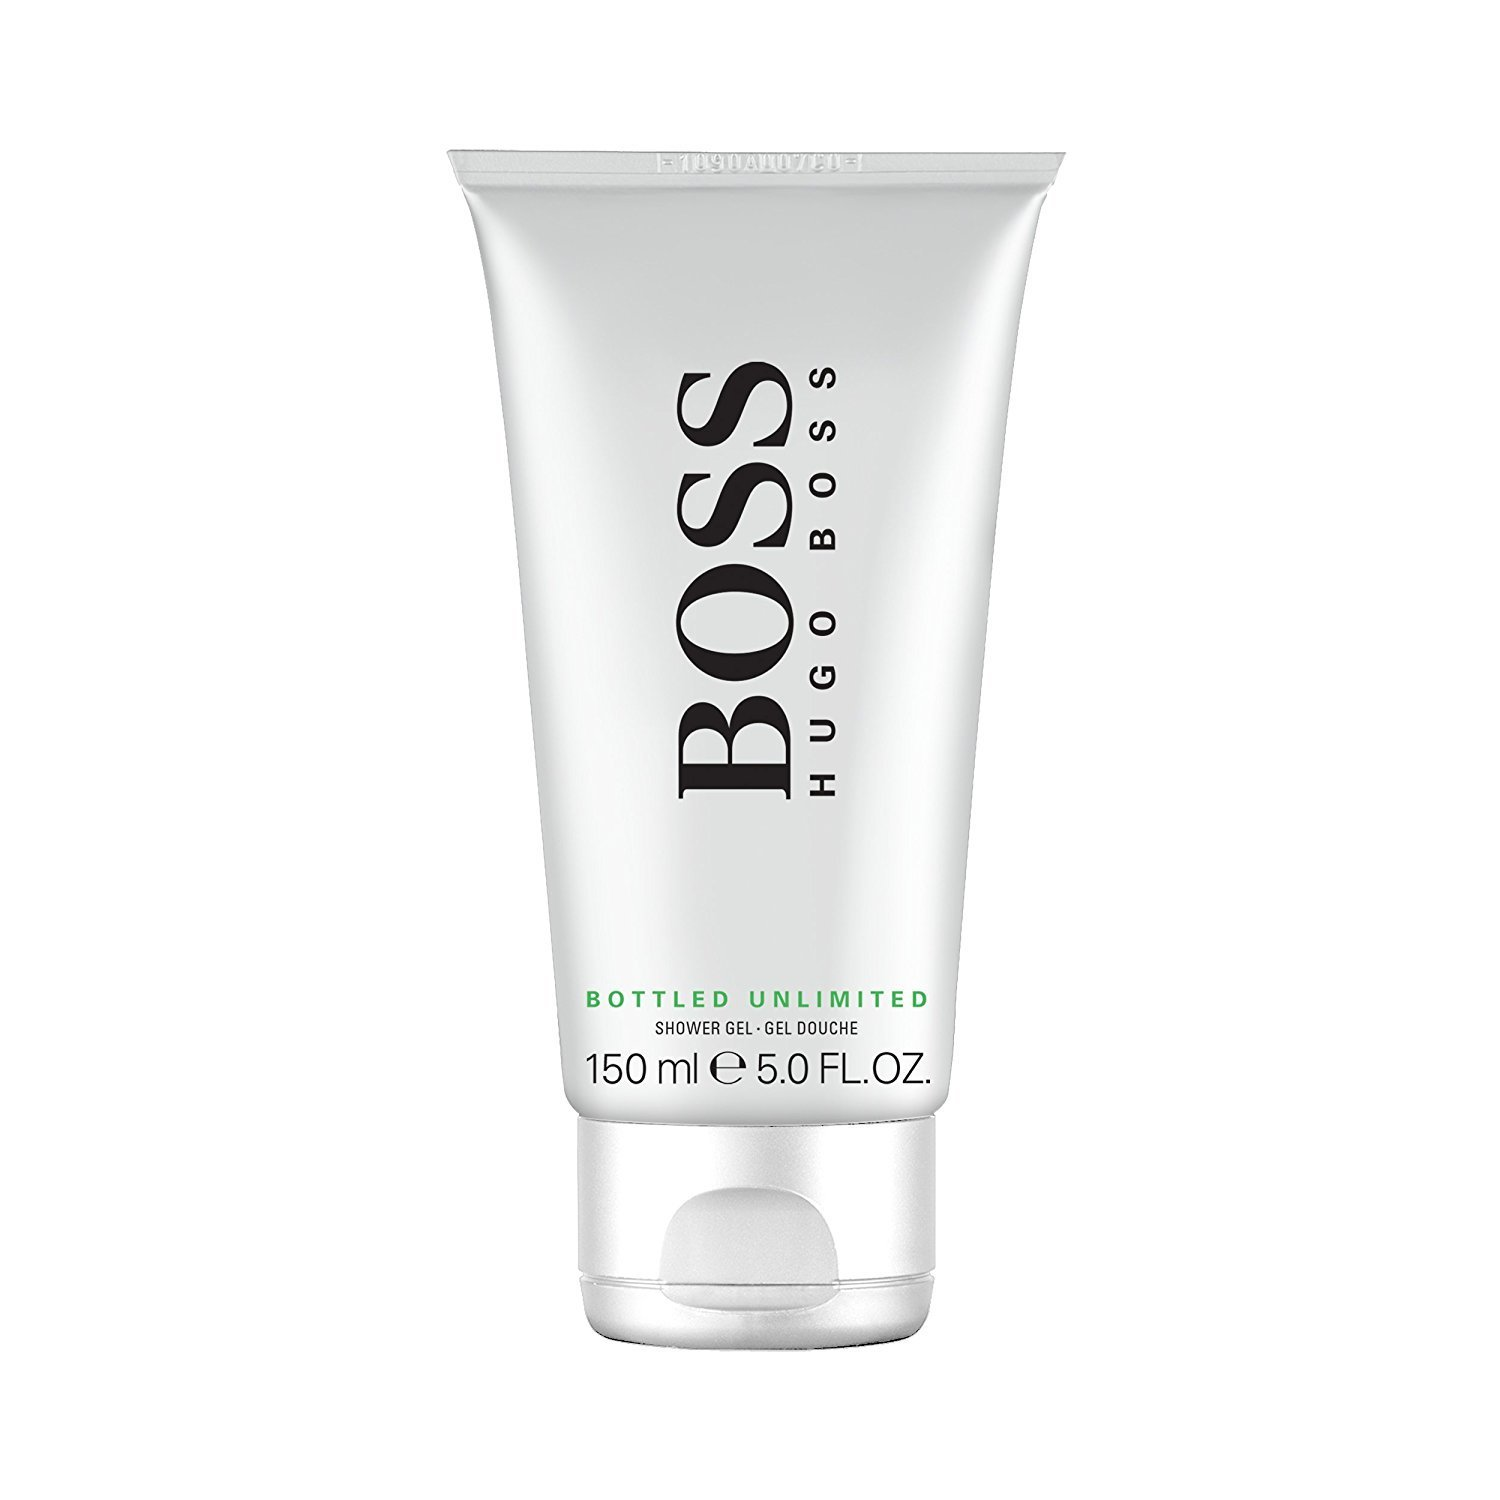 Dušo želė Hugo Boss Boss Bottled Unlimited vyrams 150 ml